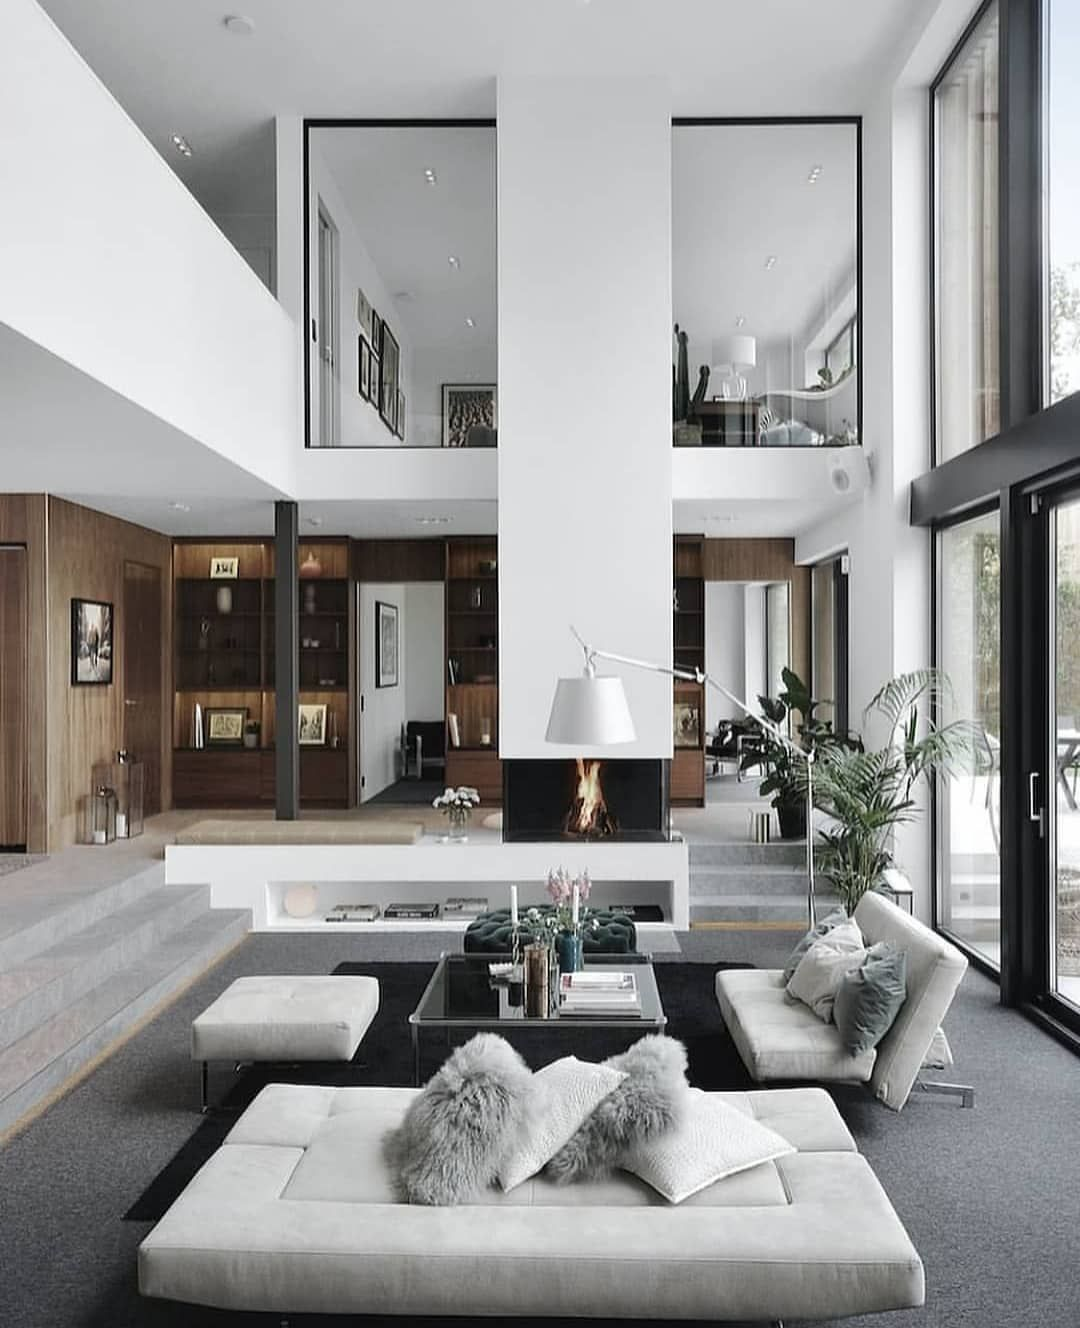 What Do You Think About This Amazing Interior Follow